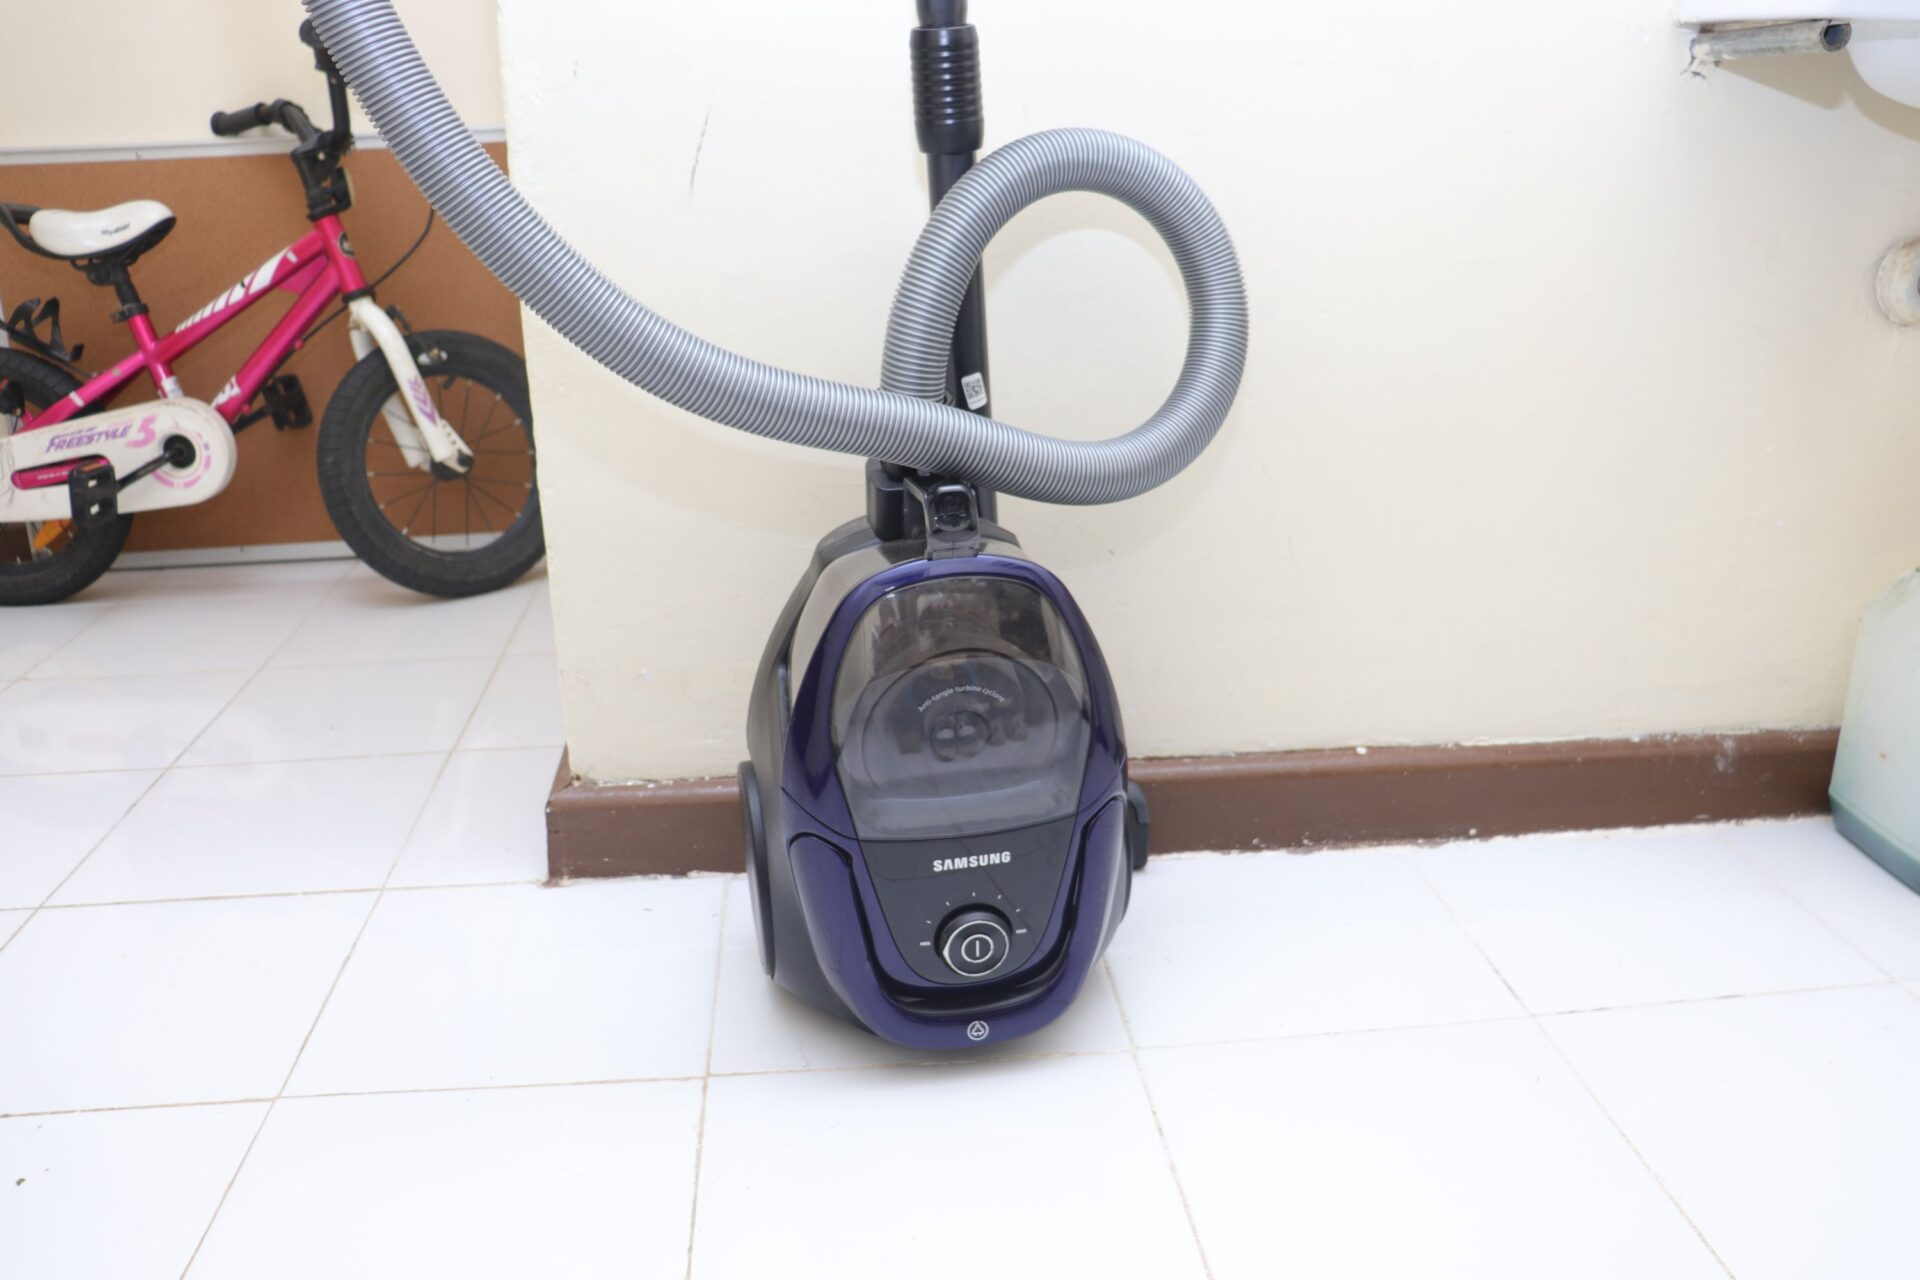 Samsung SC18M3110VB Canister Vacuum Cleane